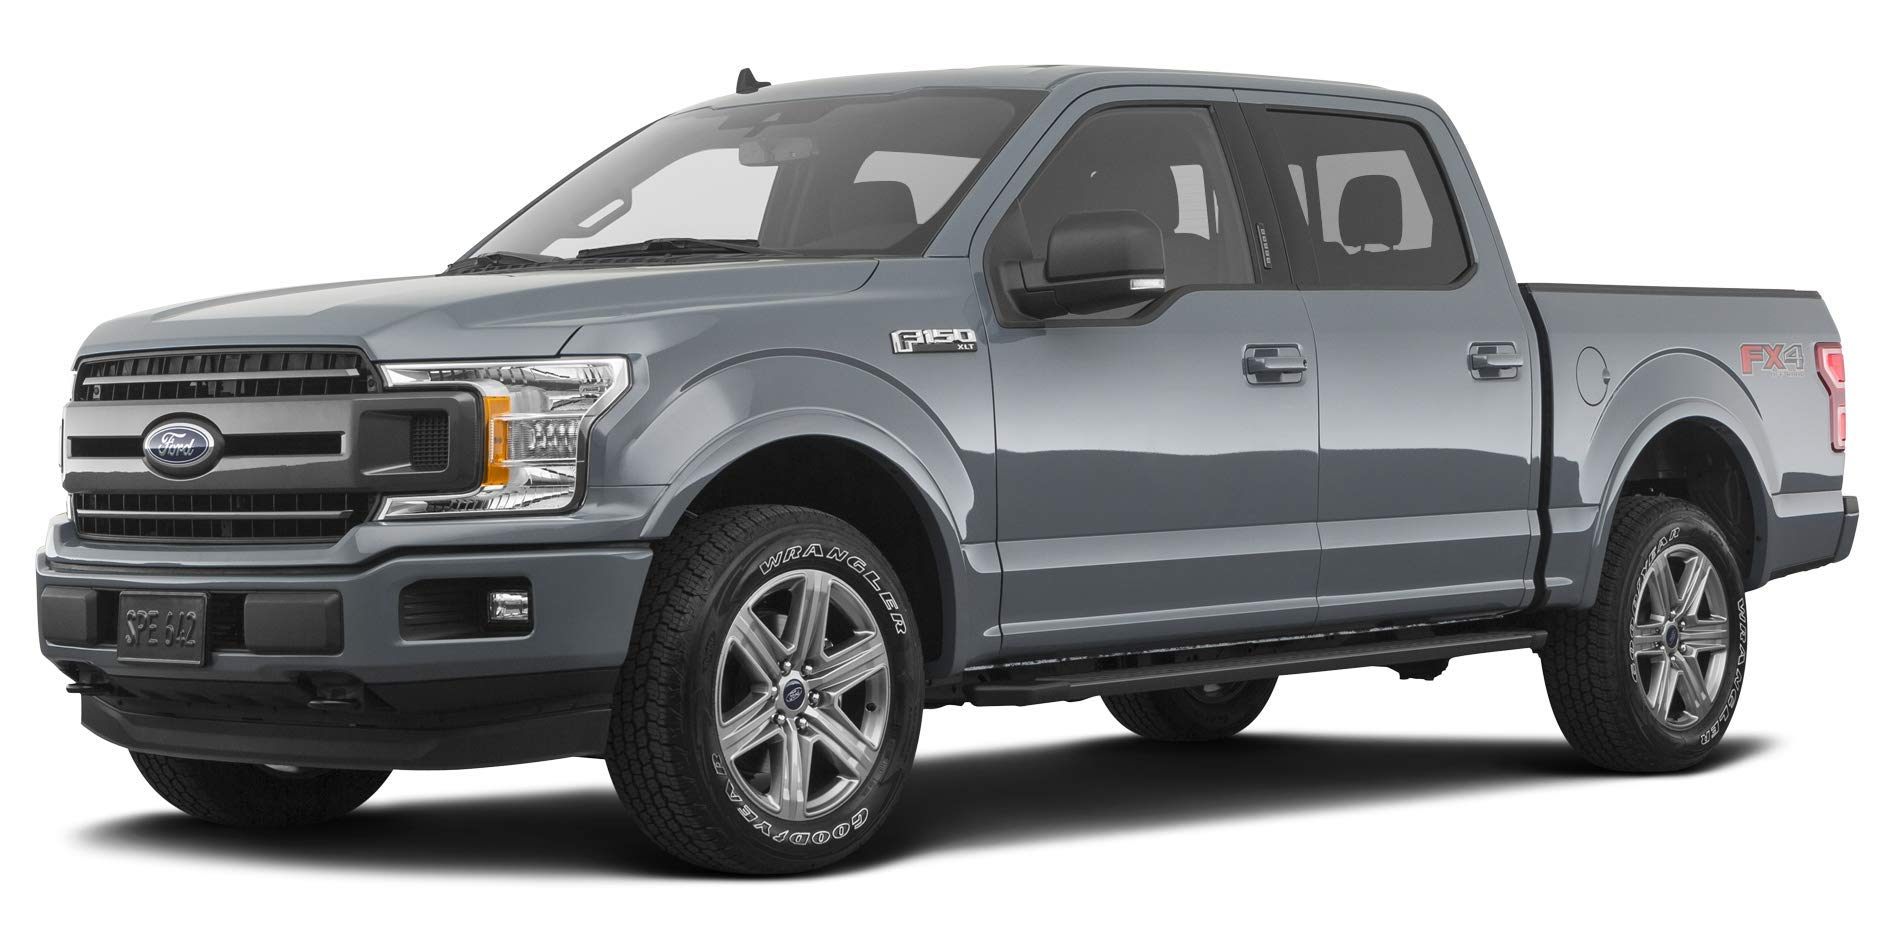 Amazon.com: 2019 Toyota Tacoma Reviews, Images, and Specs ...